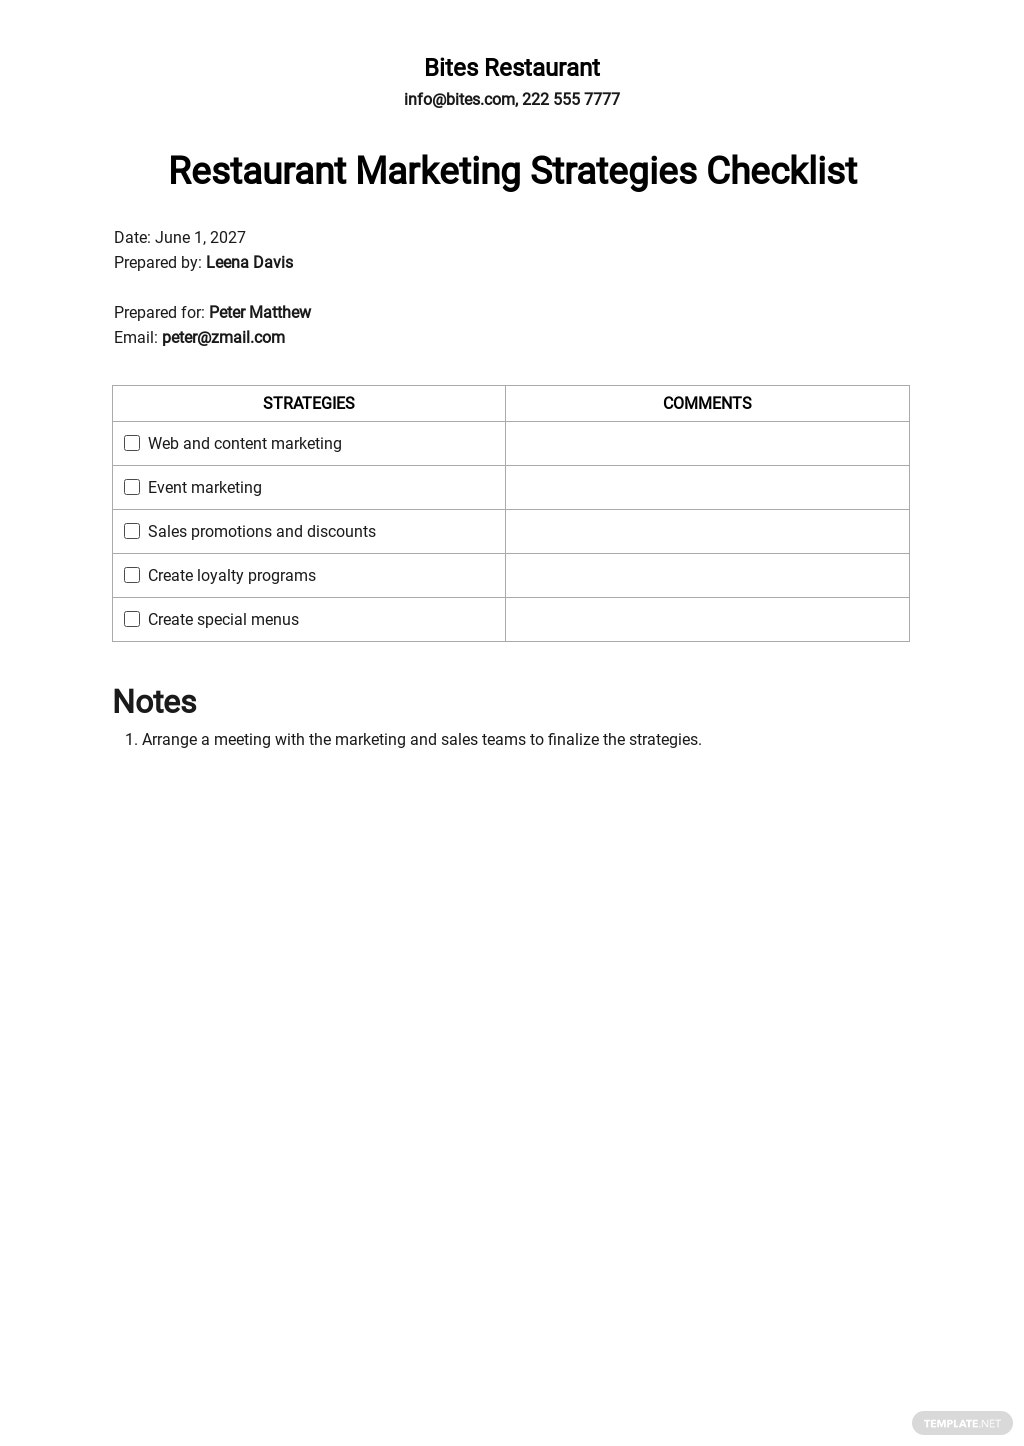 Restaurant Marketing Strategies Checklist Template.jpe